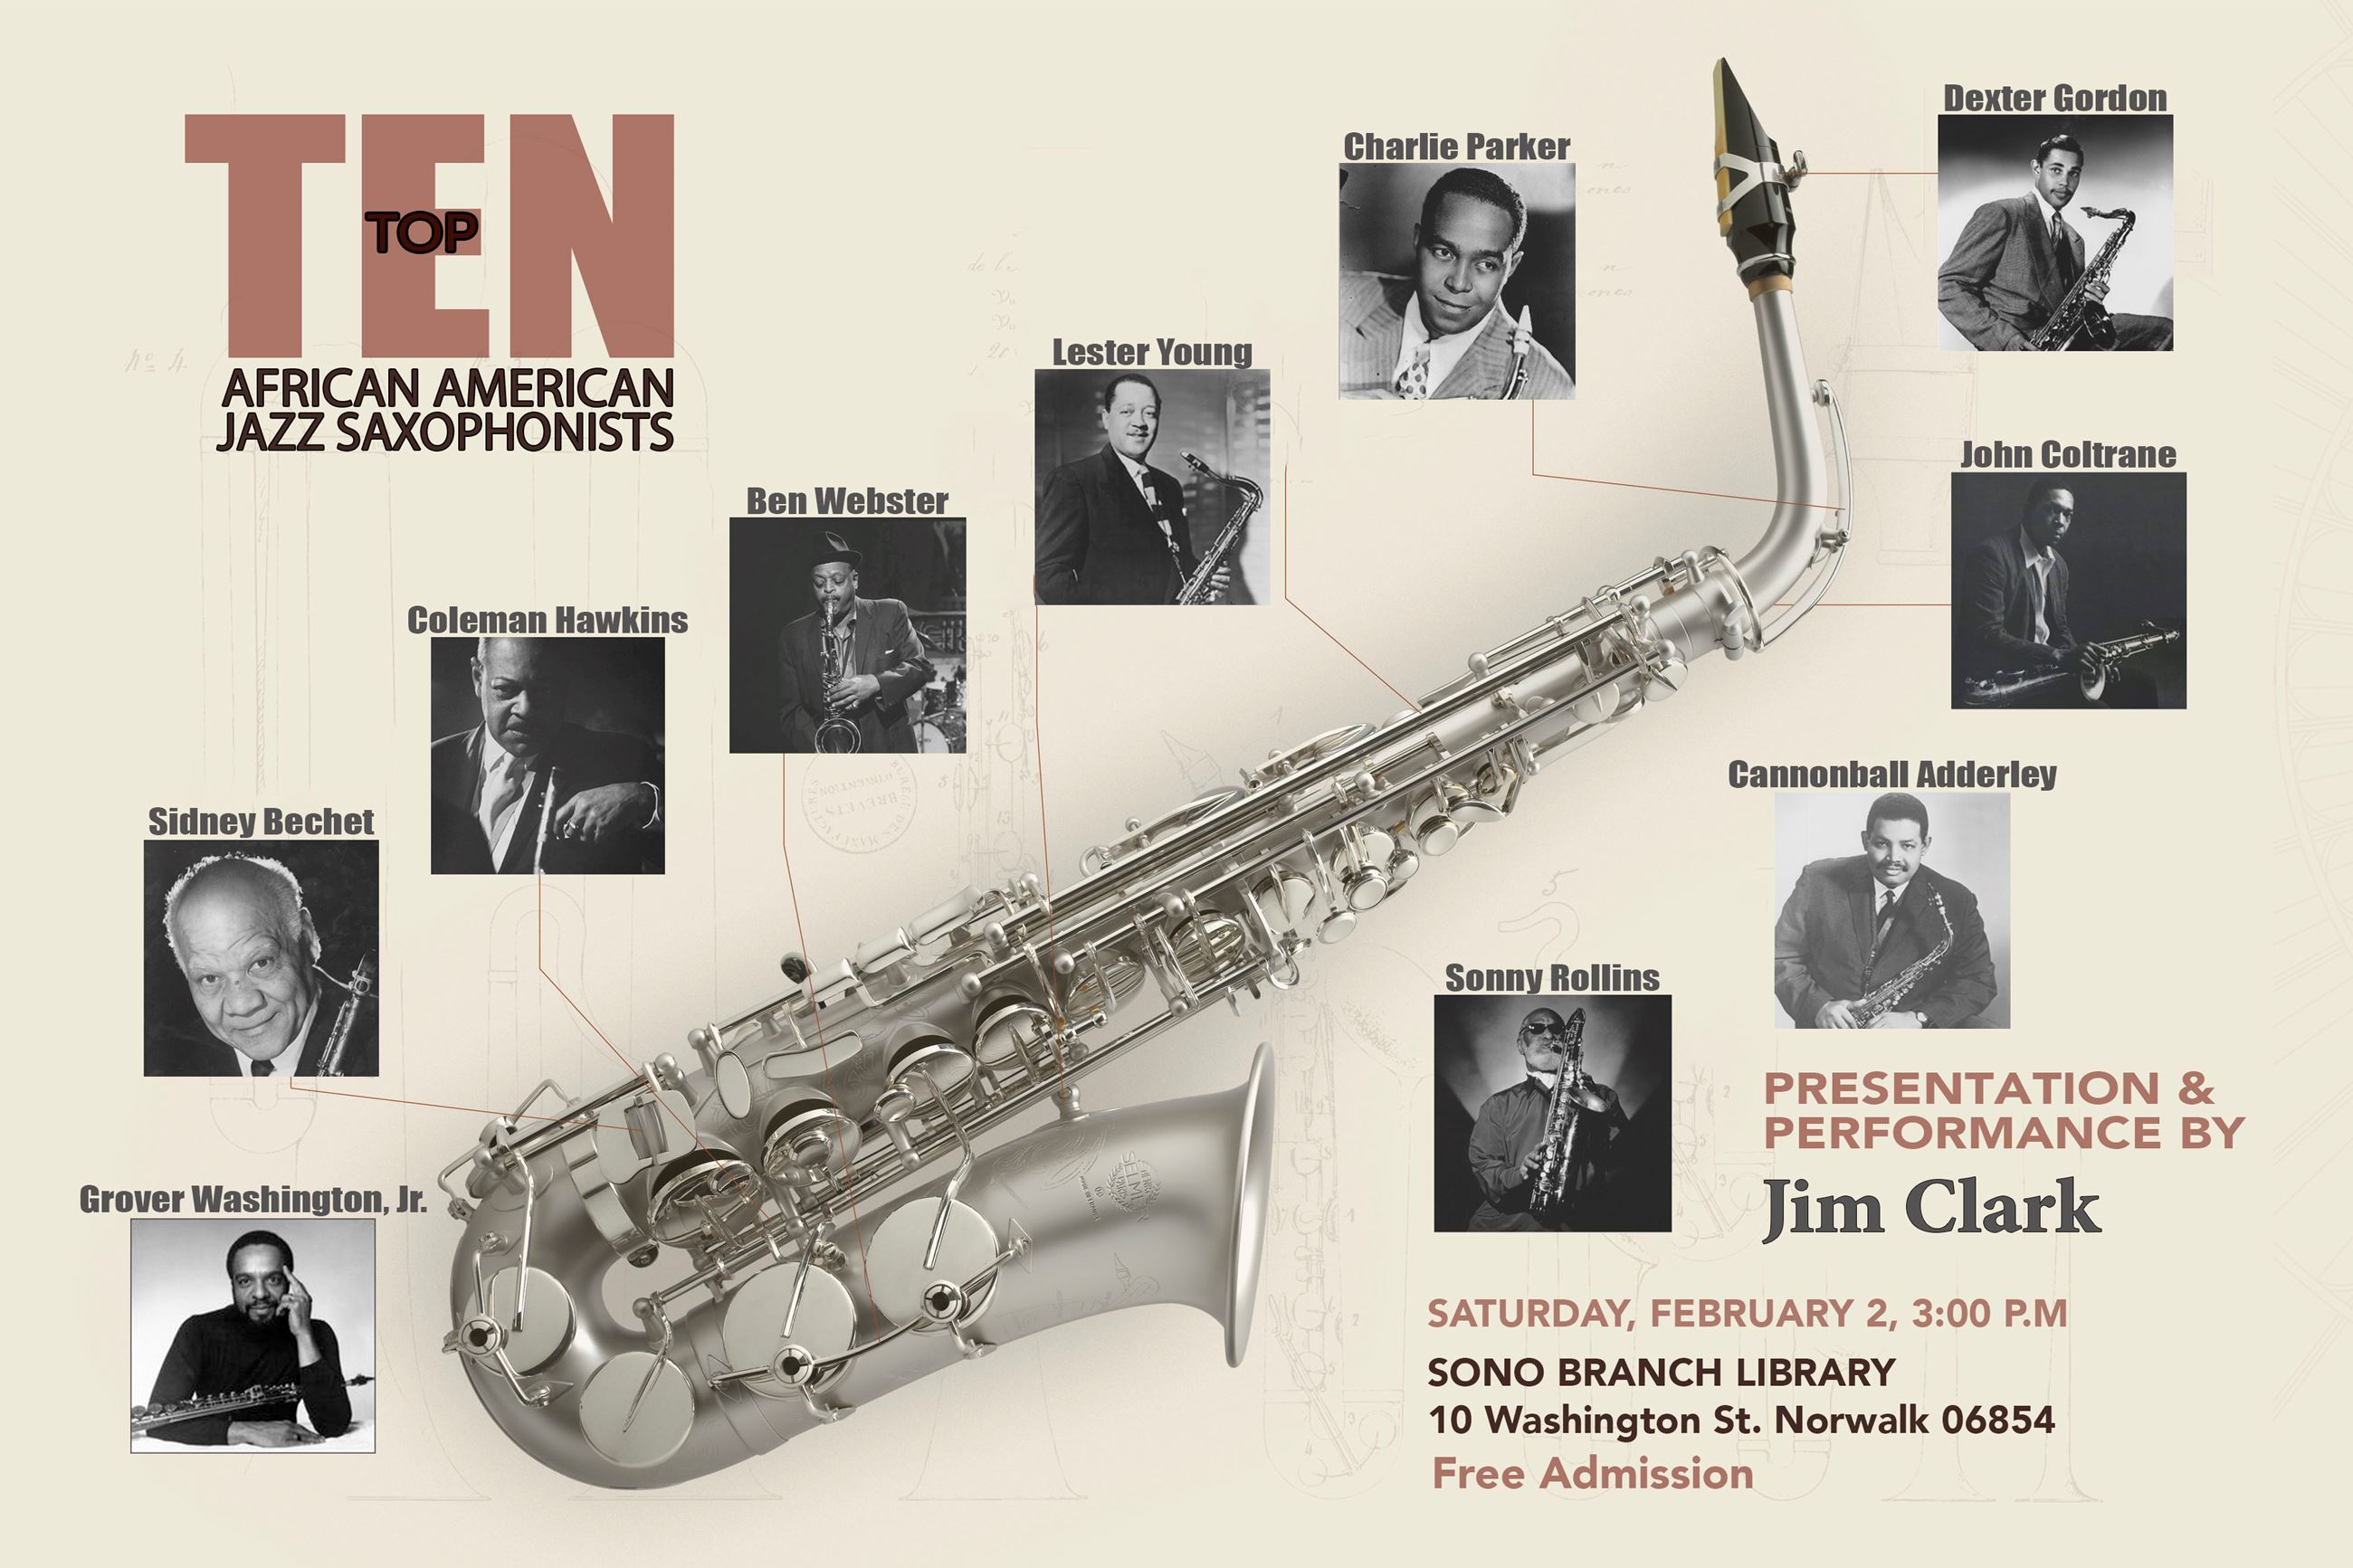 Top Ten African American Jazz Saxophonists